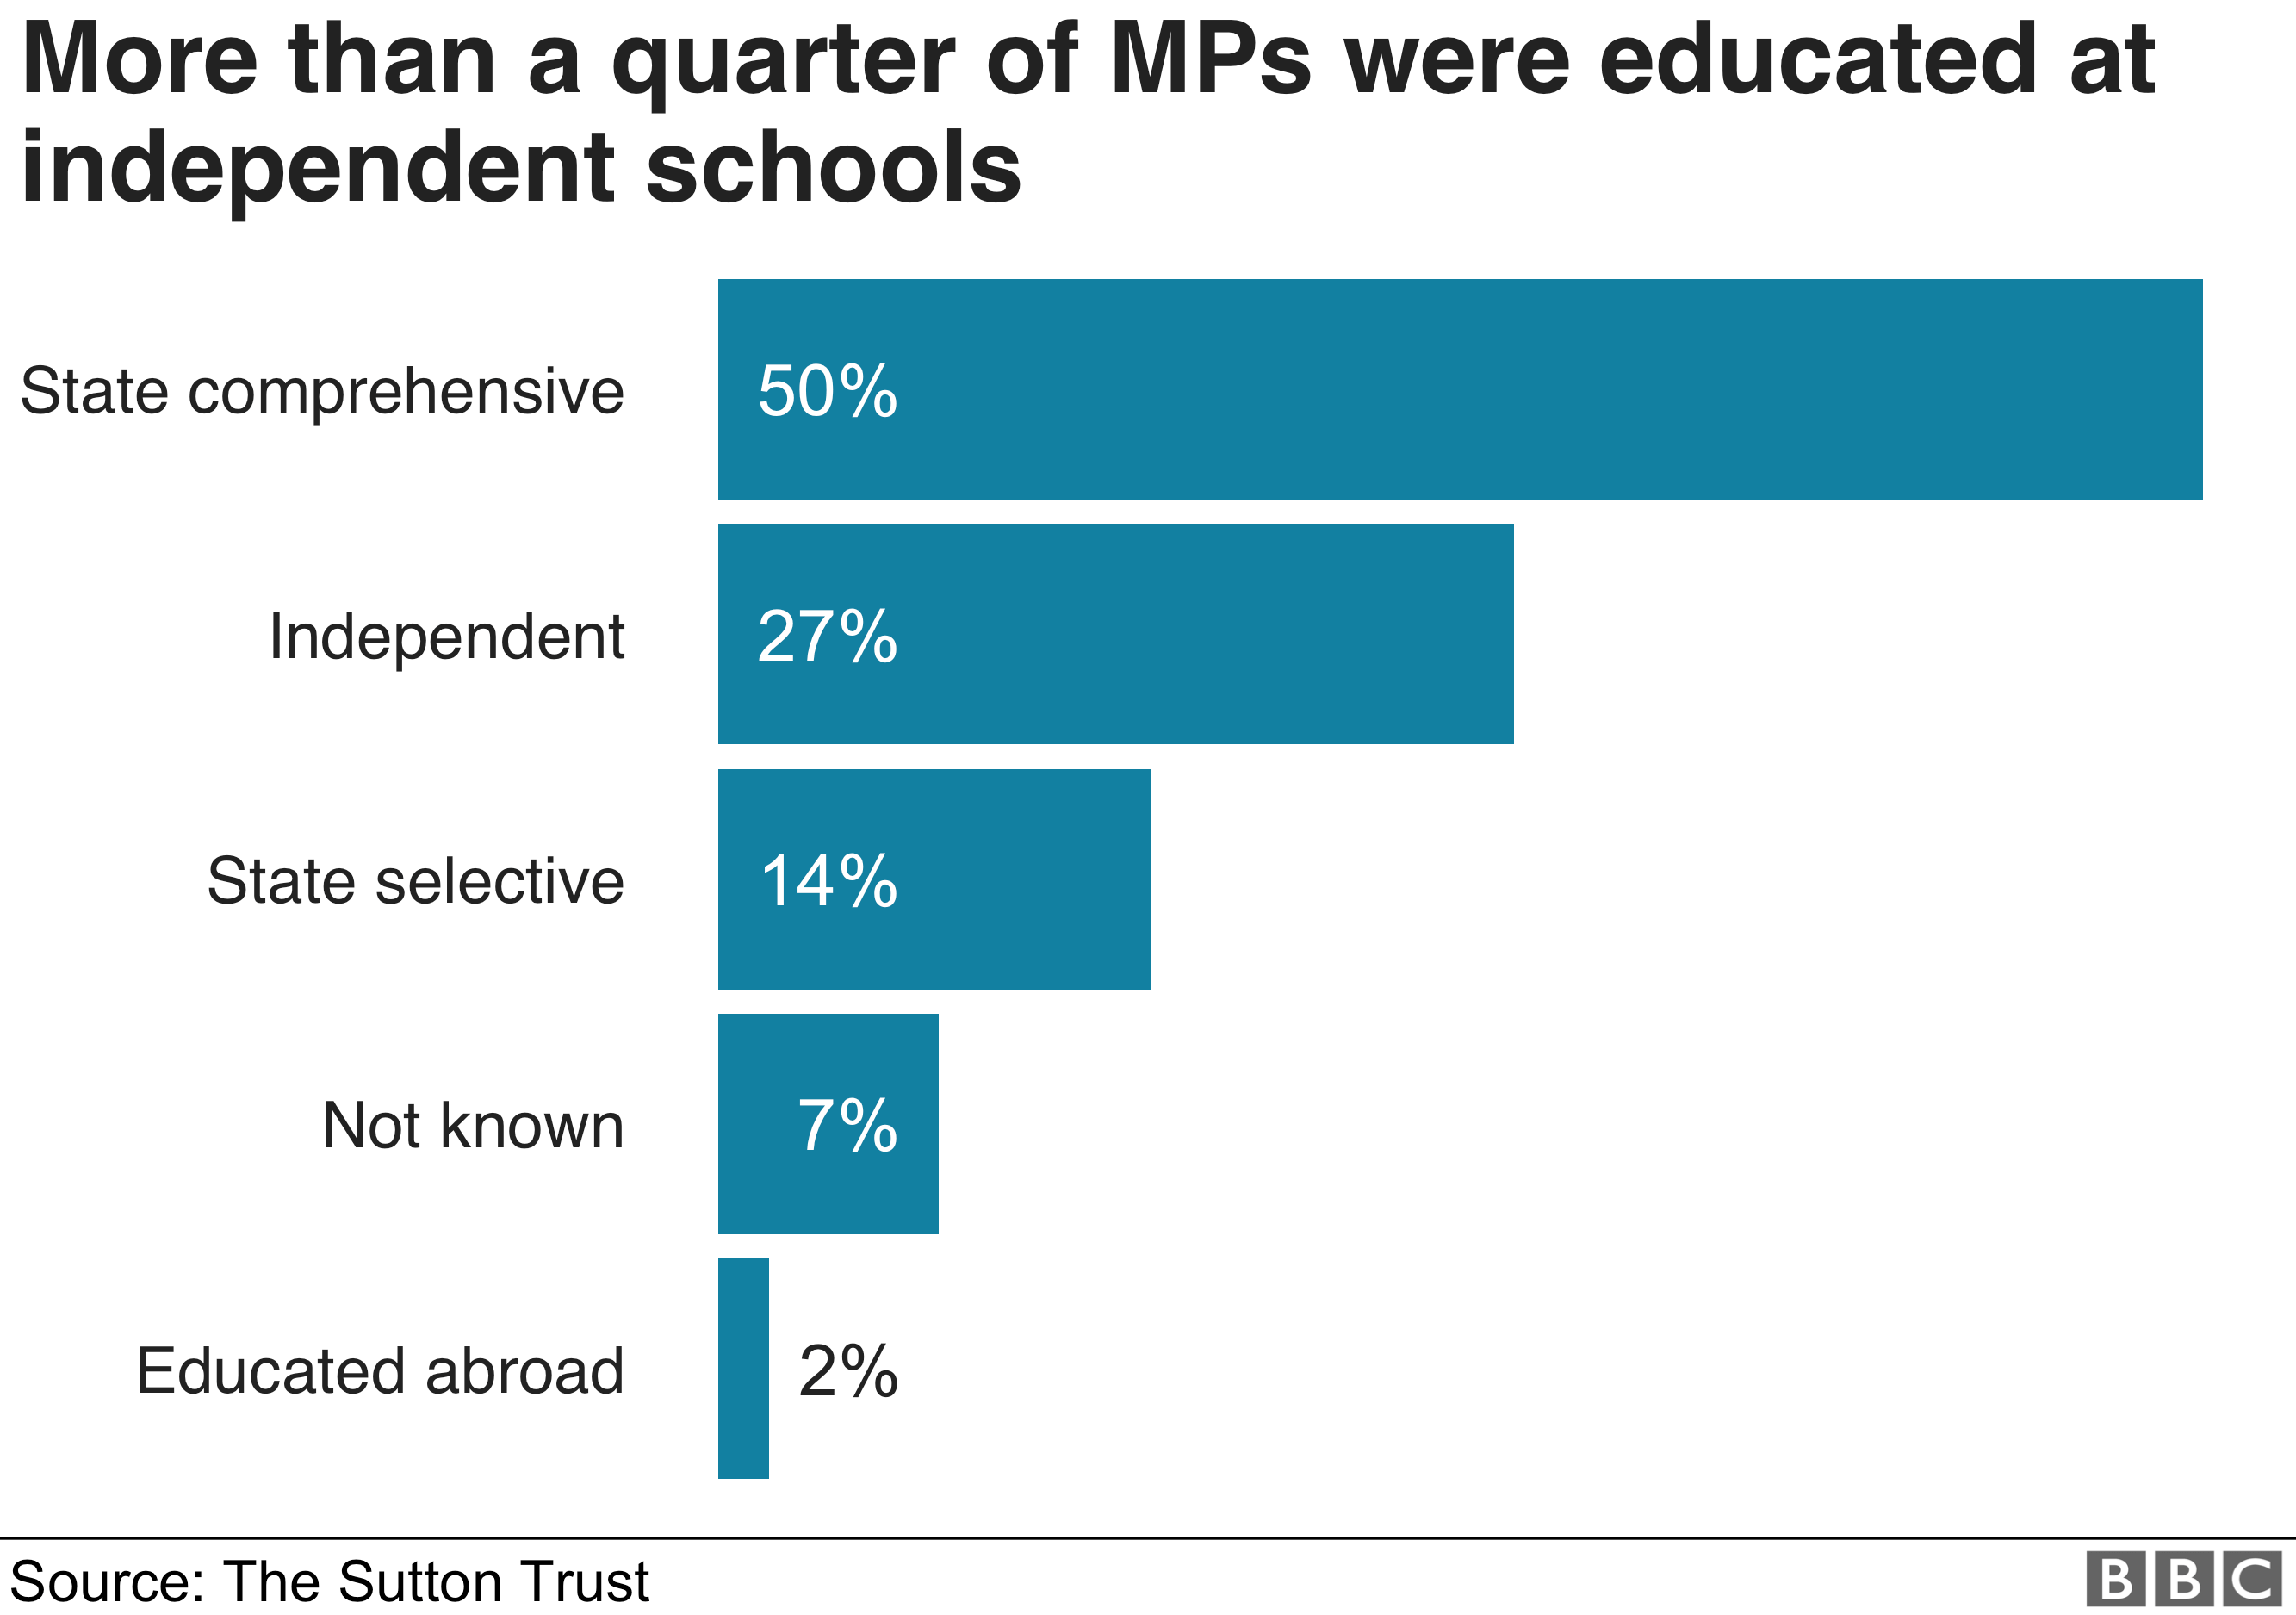 More than a quarter of MPs went to an Independent school